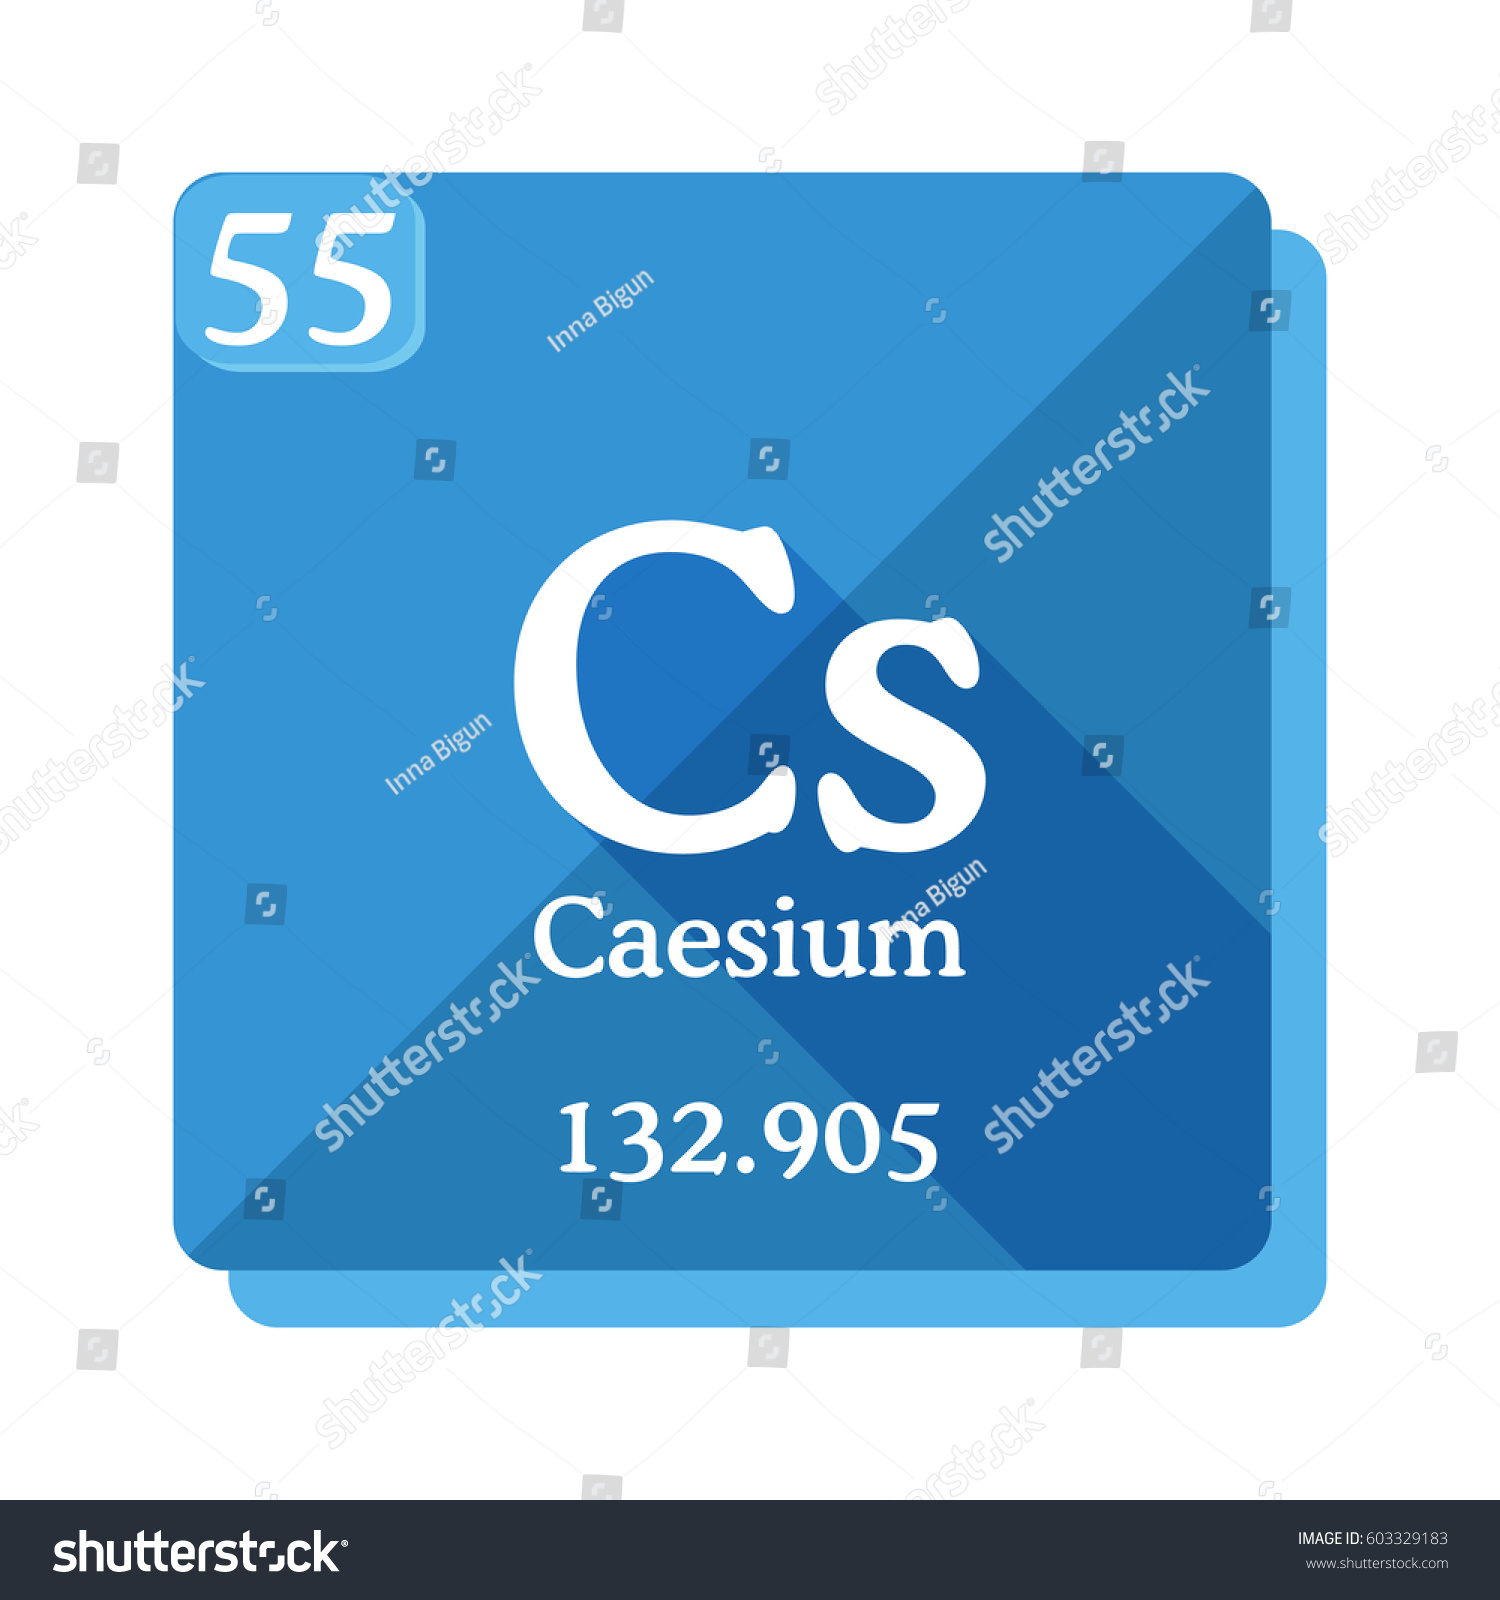 Cesium symbol periodic table image collections periodic table images caesium cs element periodic table cesium stock vector 603329183 caesium cs element of the periodic table gamestrikefo Image collections